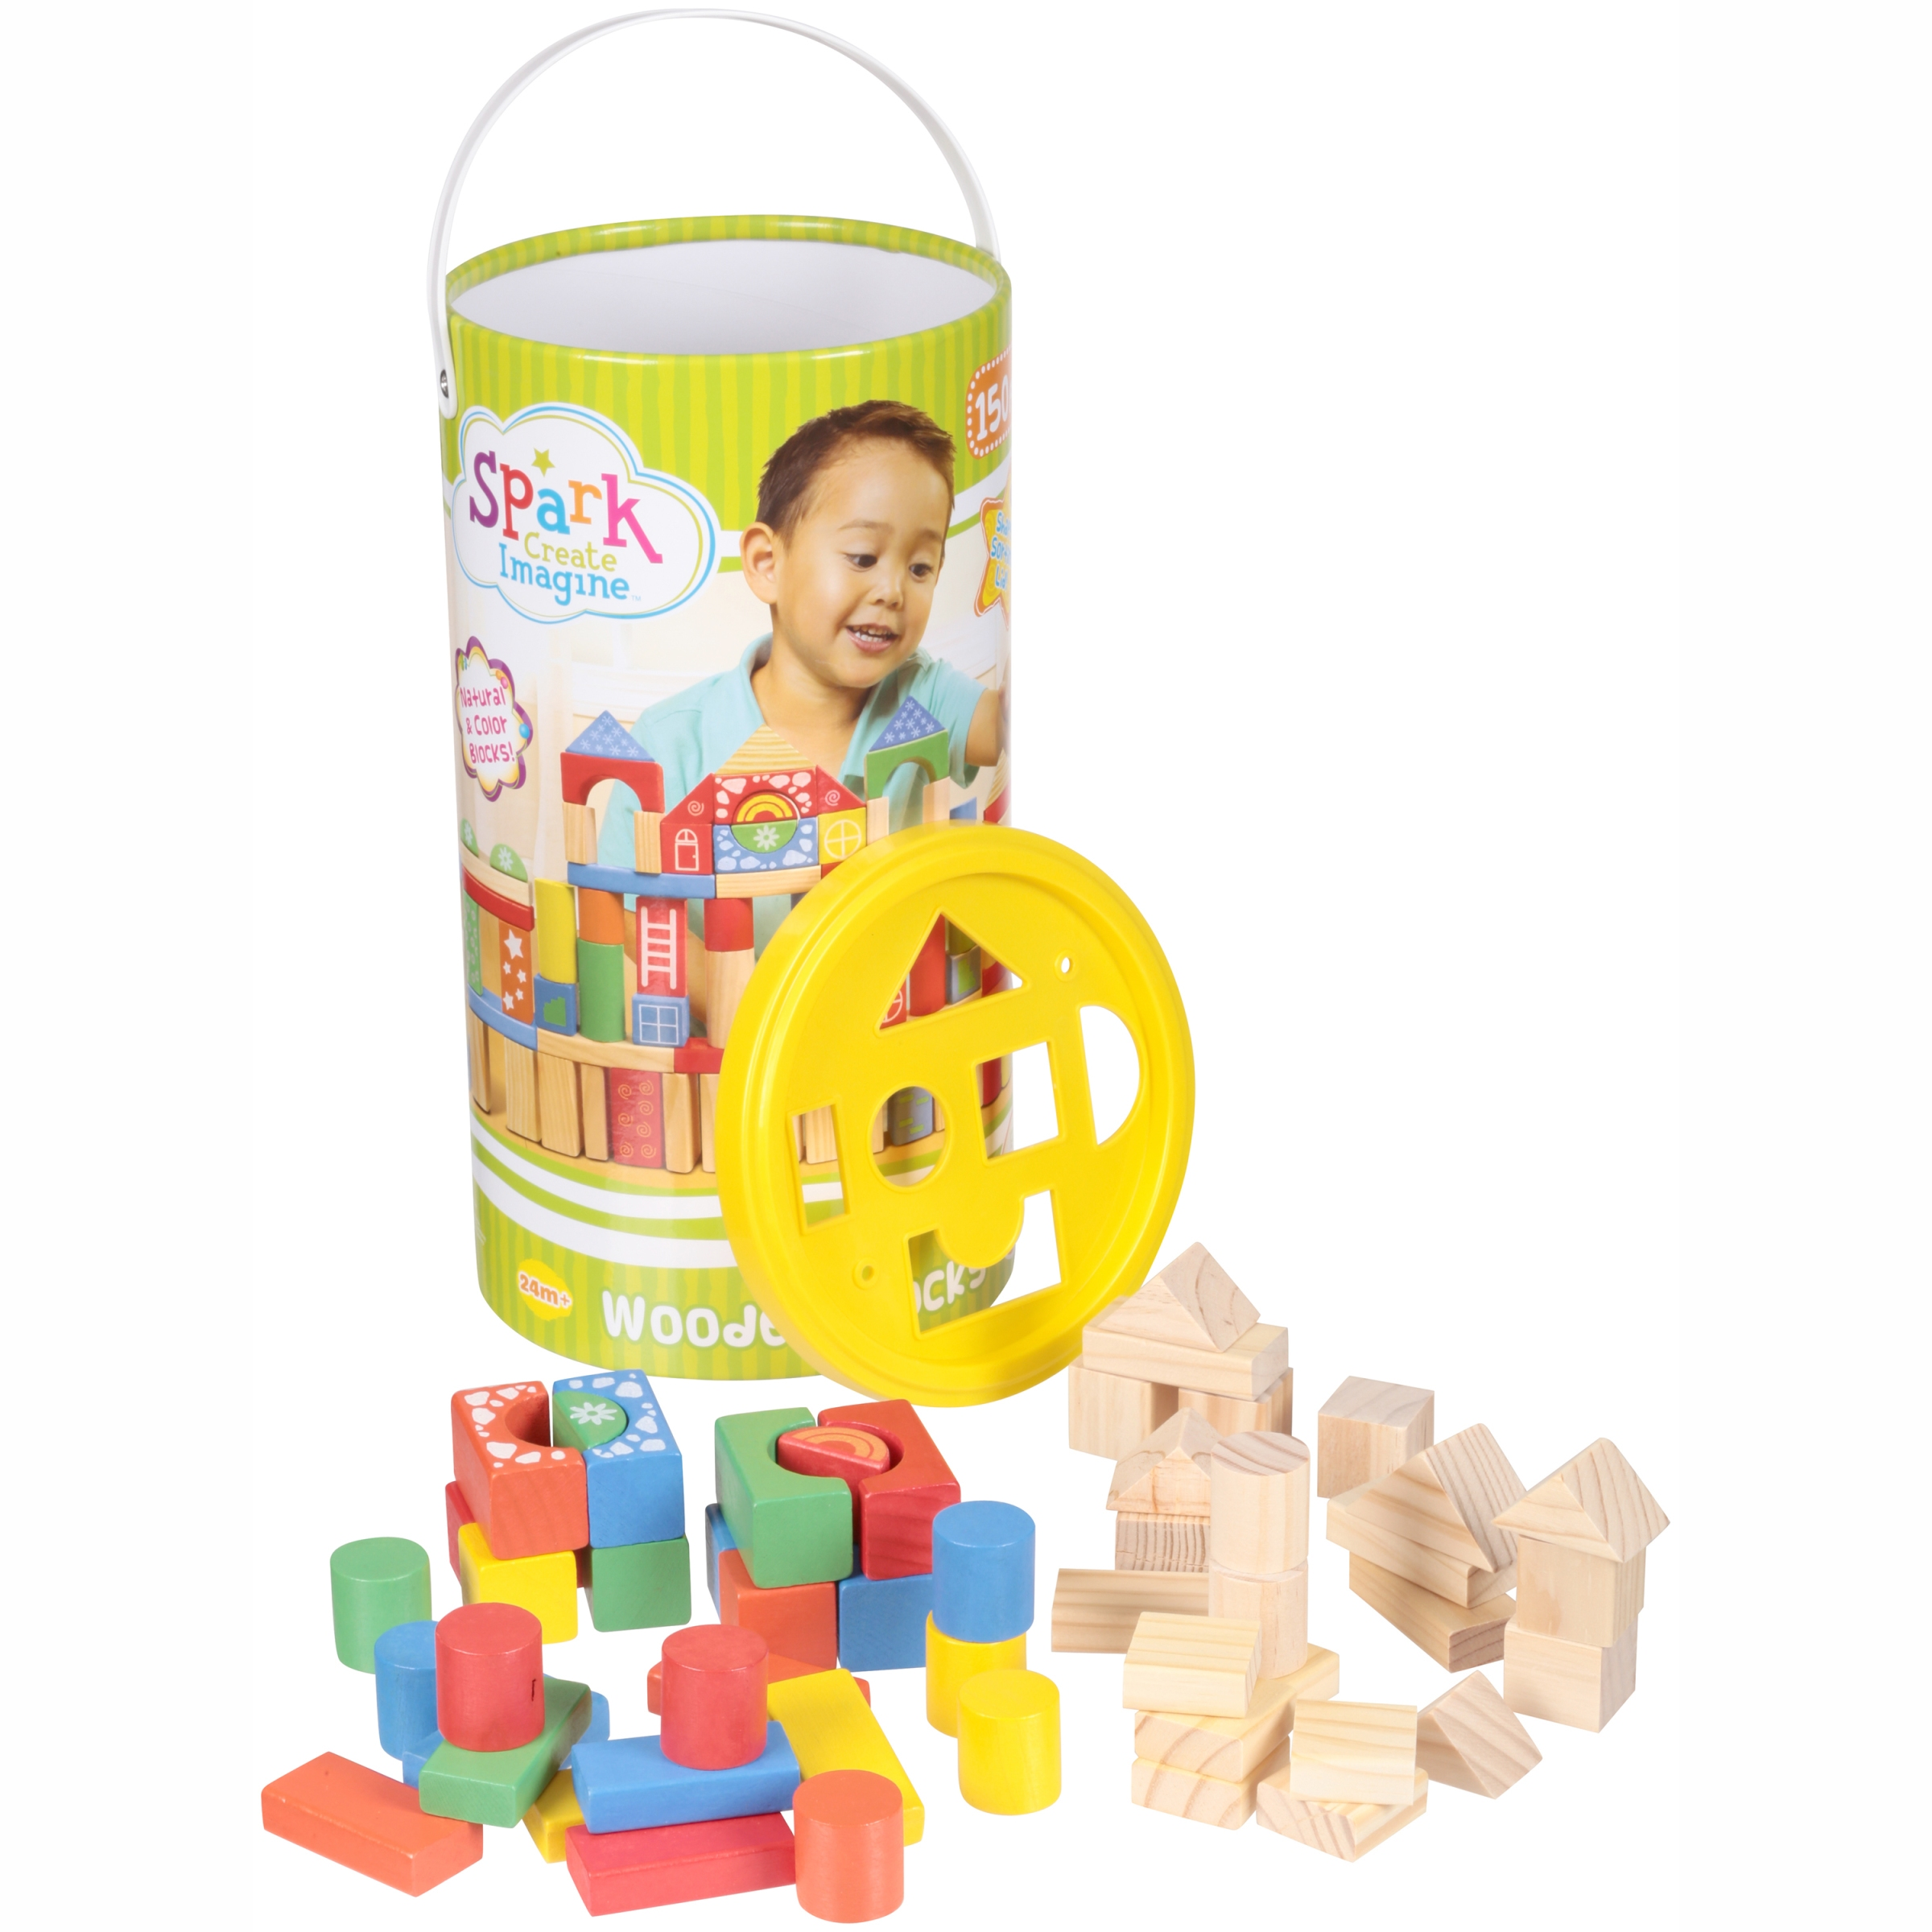 Spark Create IMagine Wooden Blocks 150 pc. Canister by Wal-Mart Stores, Inc.